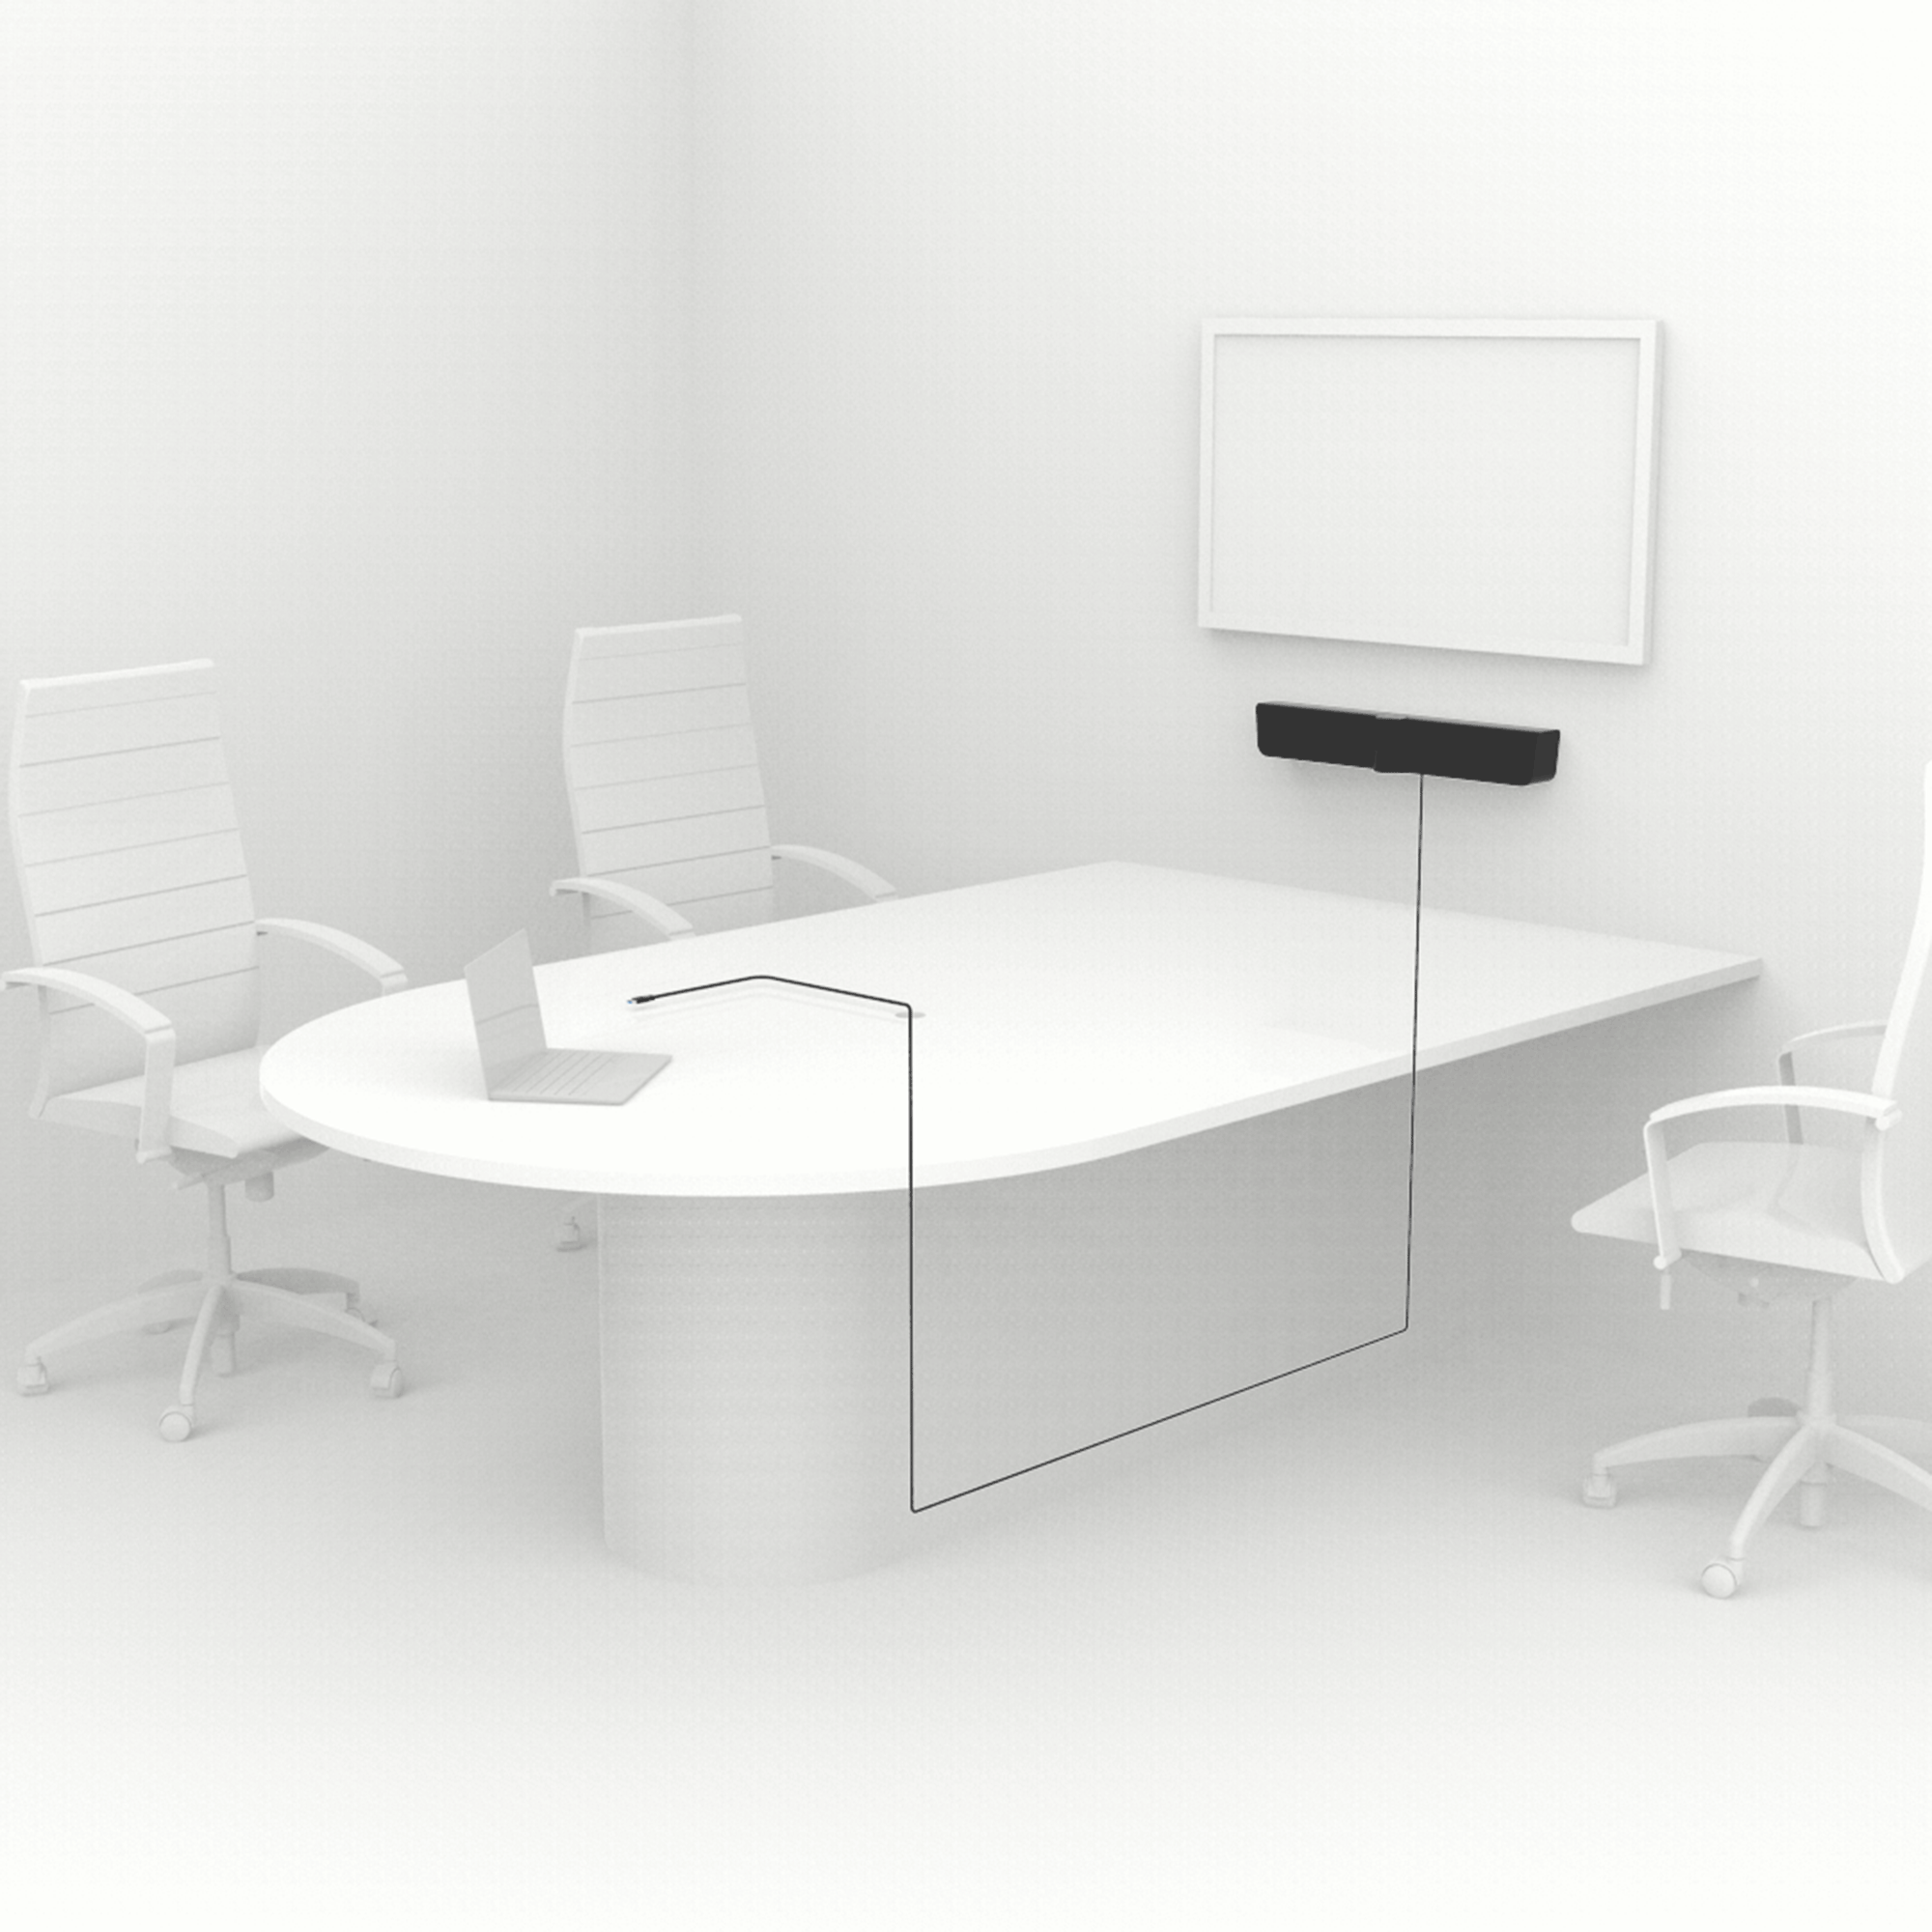 huddle-room-setup